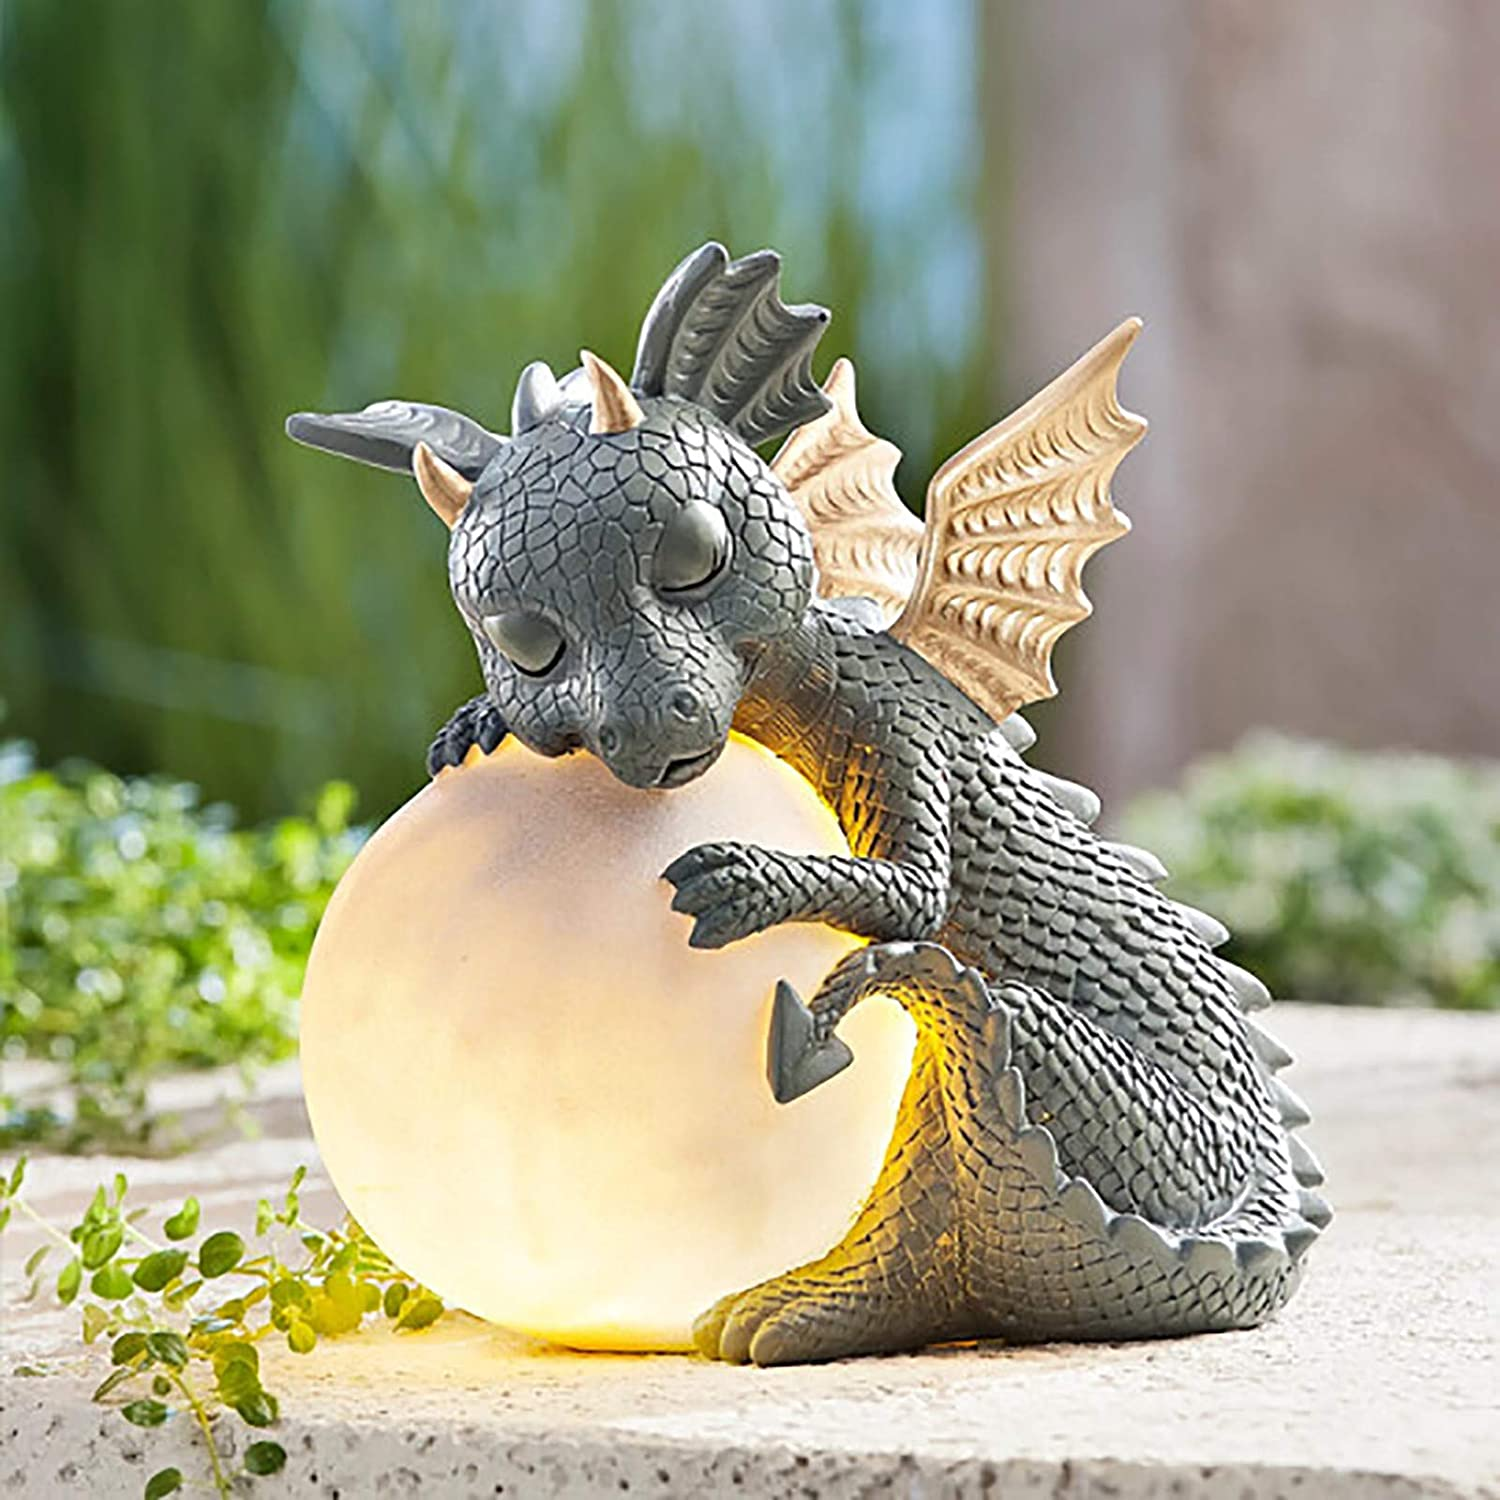 SNKSDGM Directly managed store Garden Dragon New Shipping Free Shipping Statue Figurine Holding Magic Resin